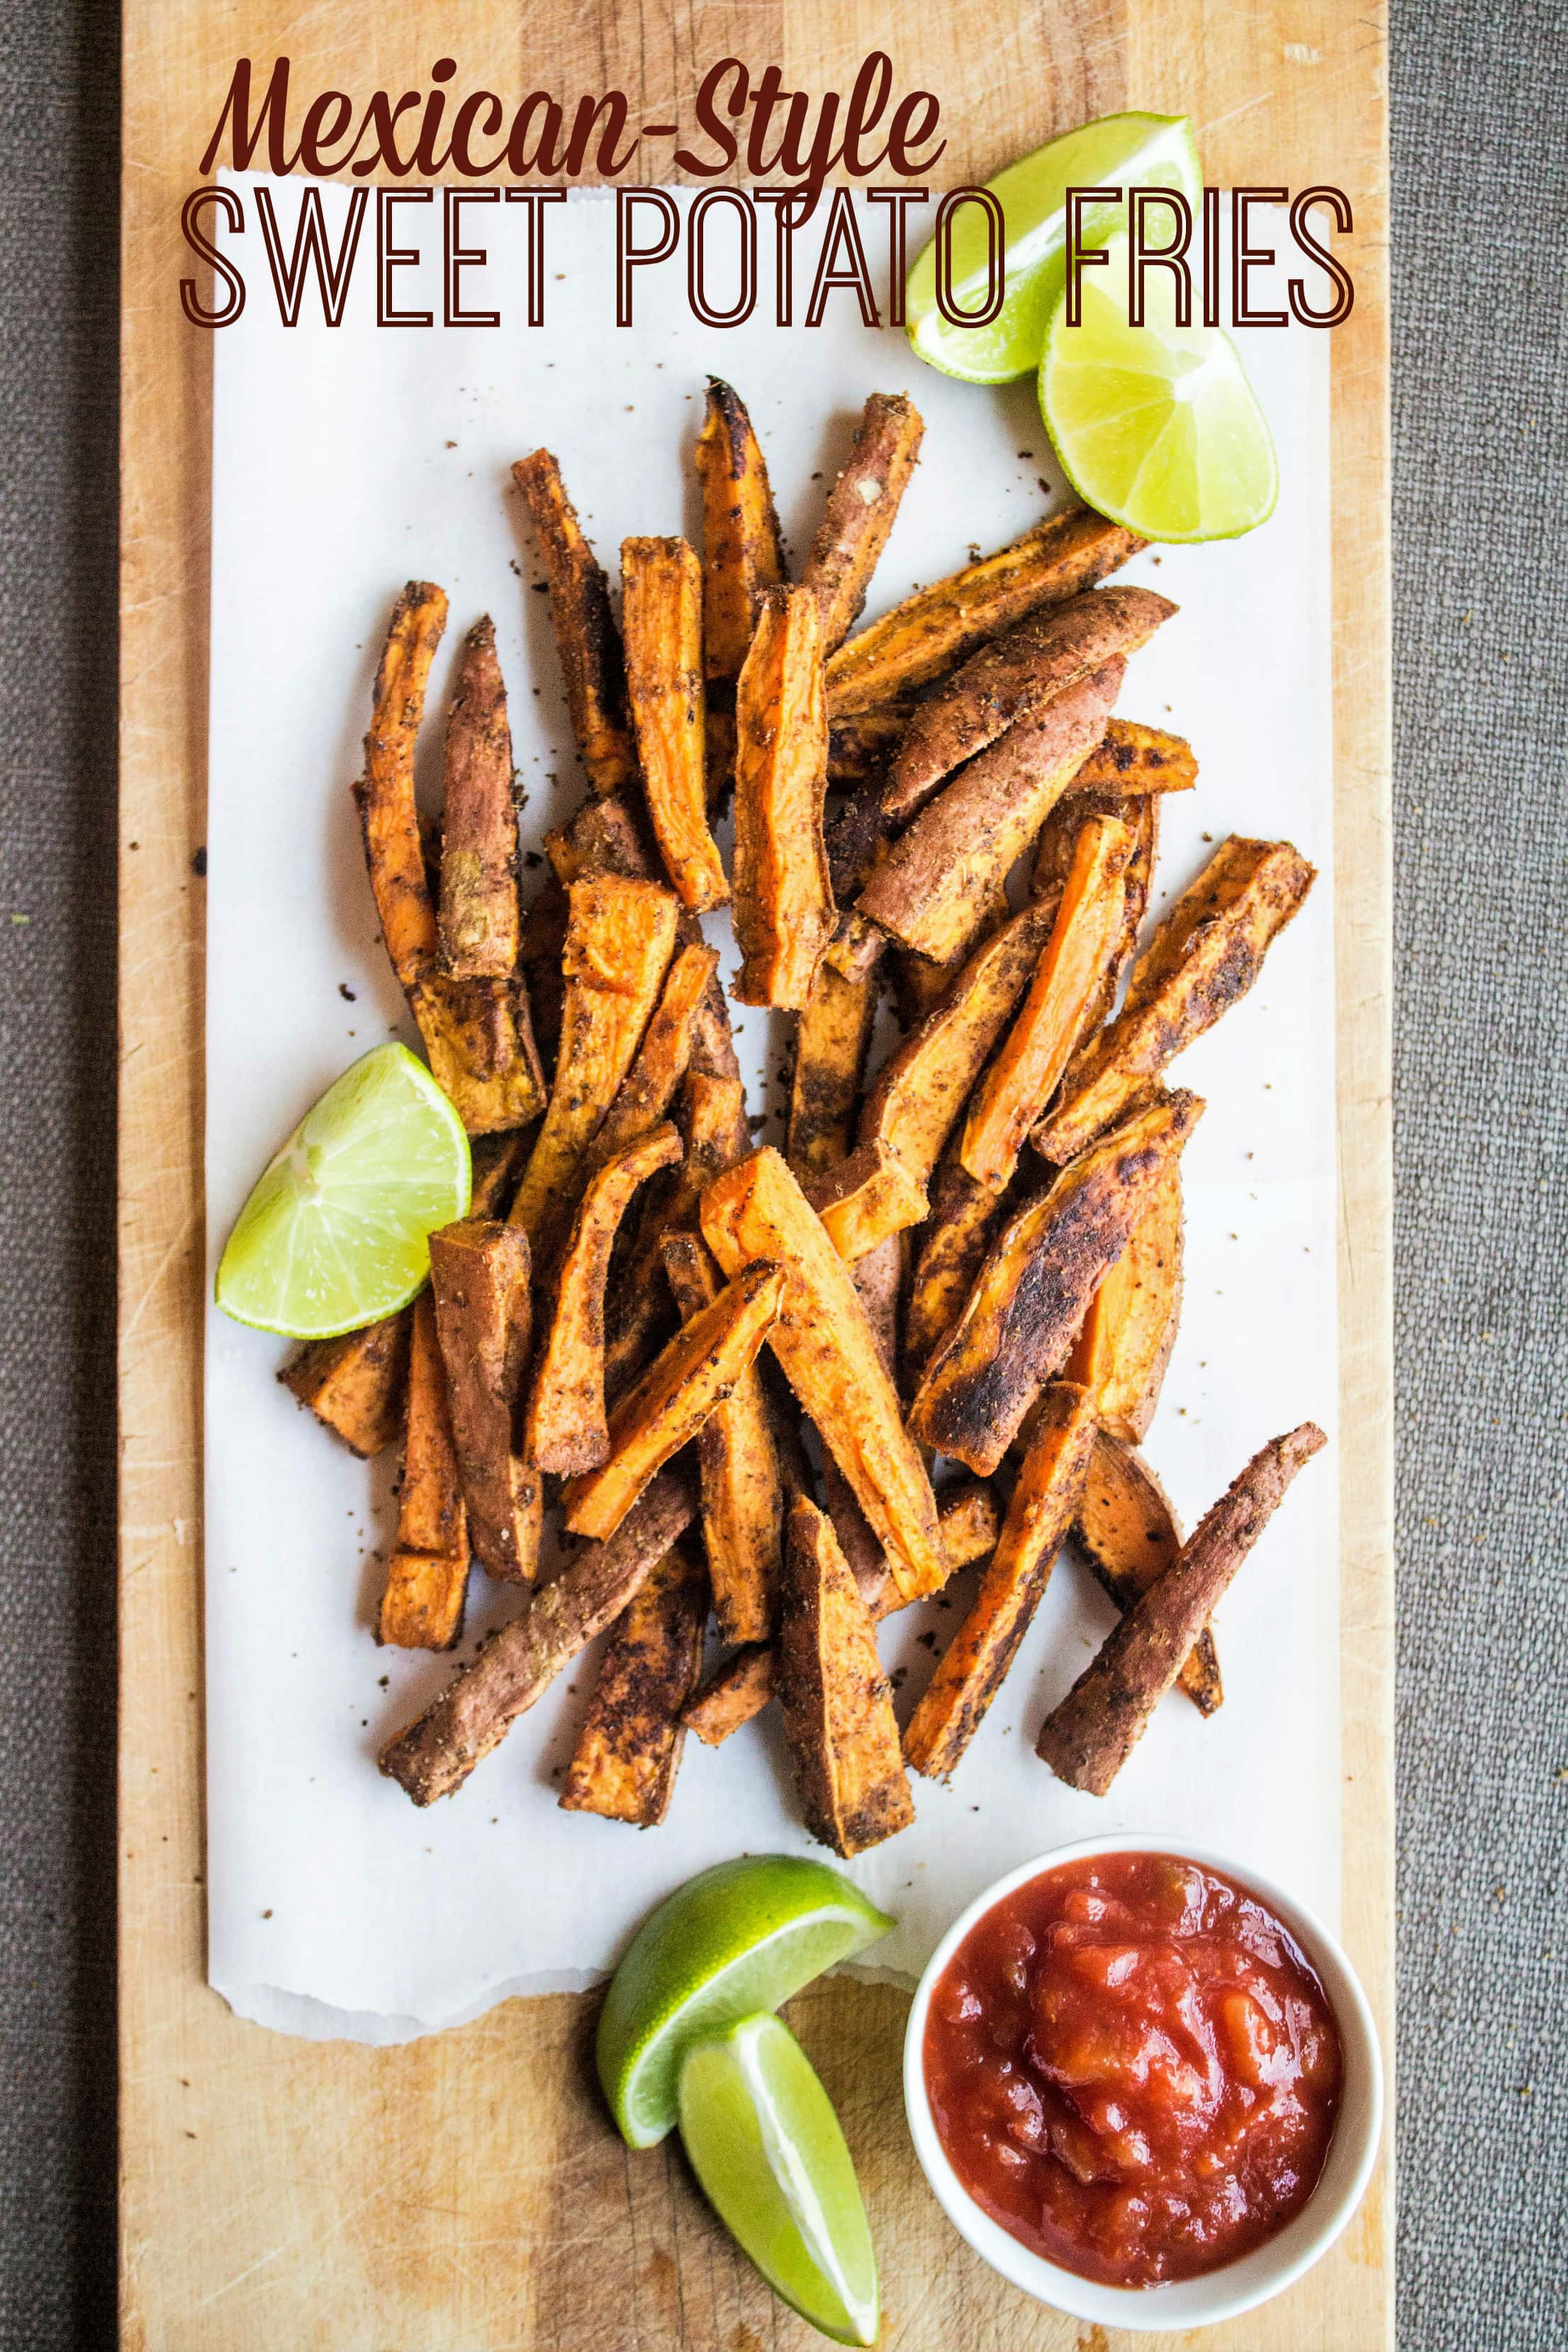 These Mexican Style Sweet Potato Fries Are Flavorful So Easy And A Perfect Healthy Side Dish For Just About Any Meal